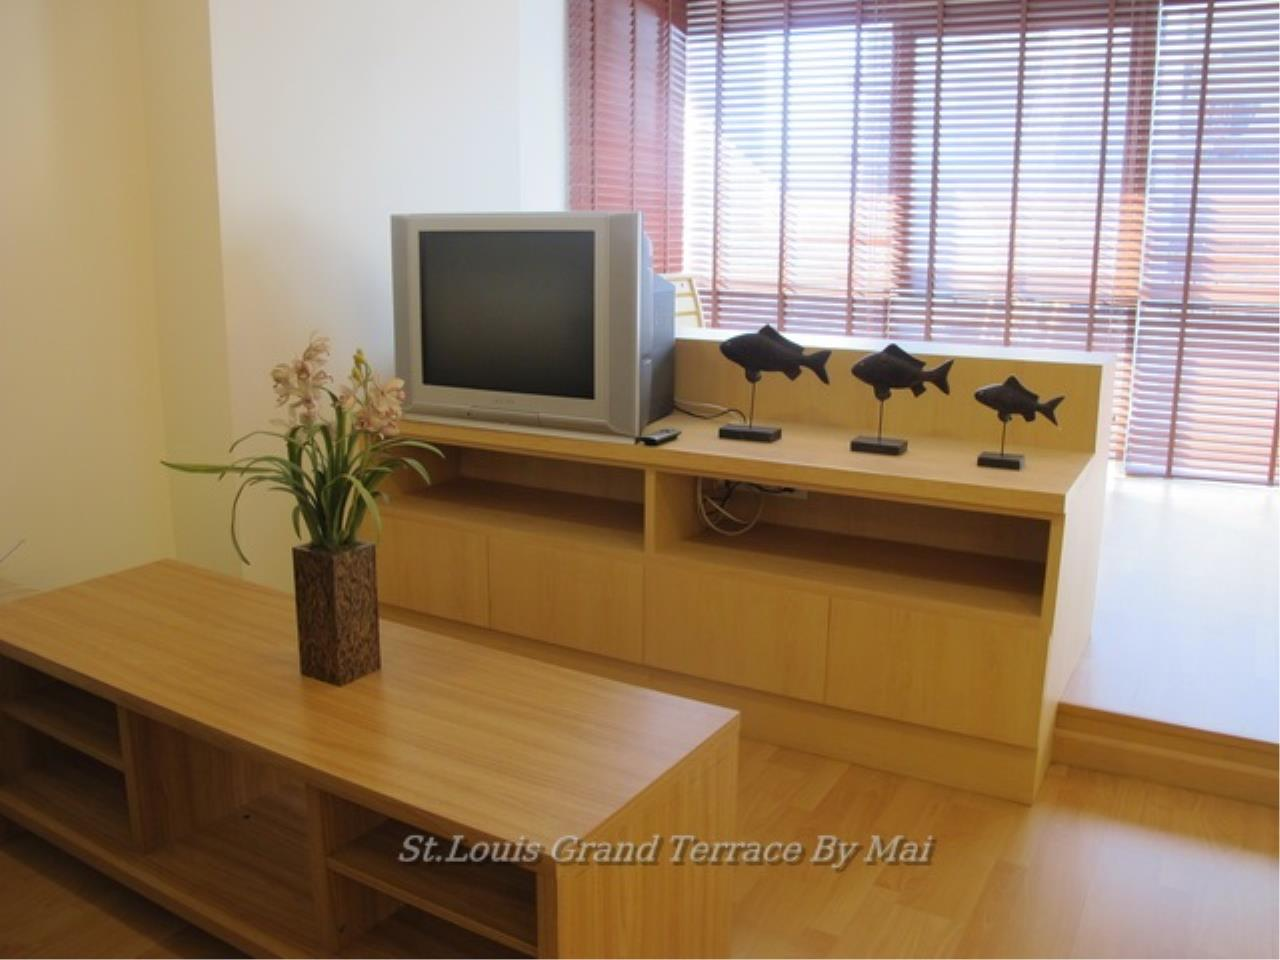 Quality Life Property Agency's For Rent Condo At St. Louis Grand Terrace 1 Bedroom 1 | 17 Floor 18, 000 THB / MONTH 2